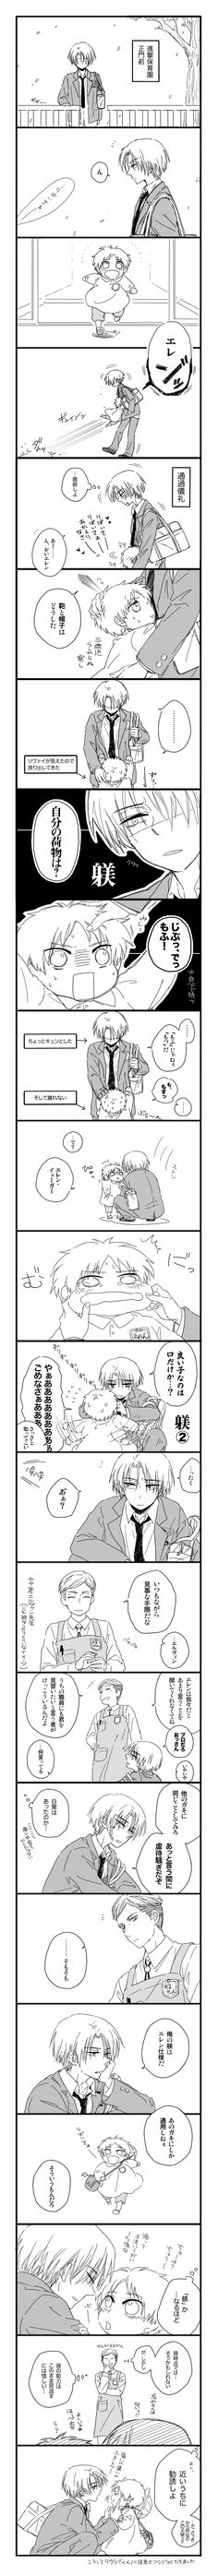 Erwin, Levi, and baby Eren // AoT